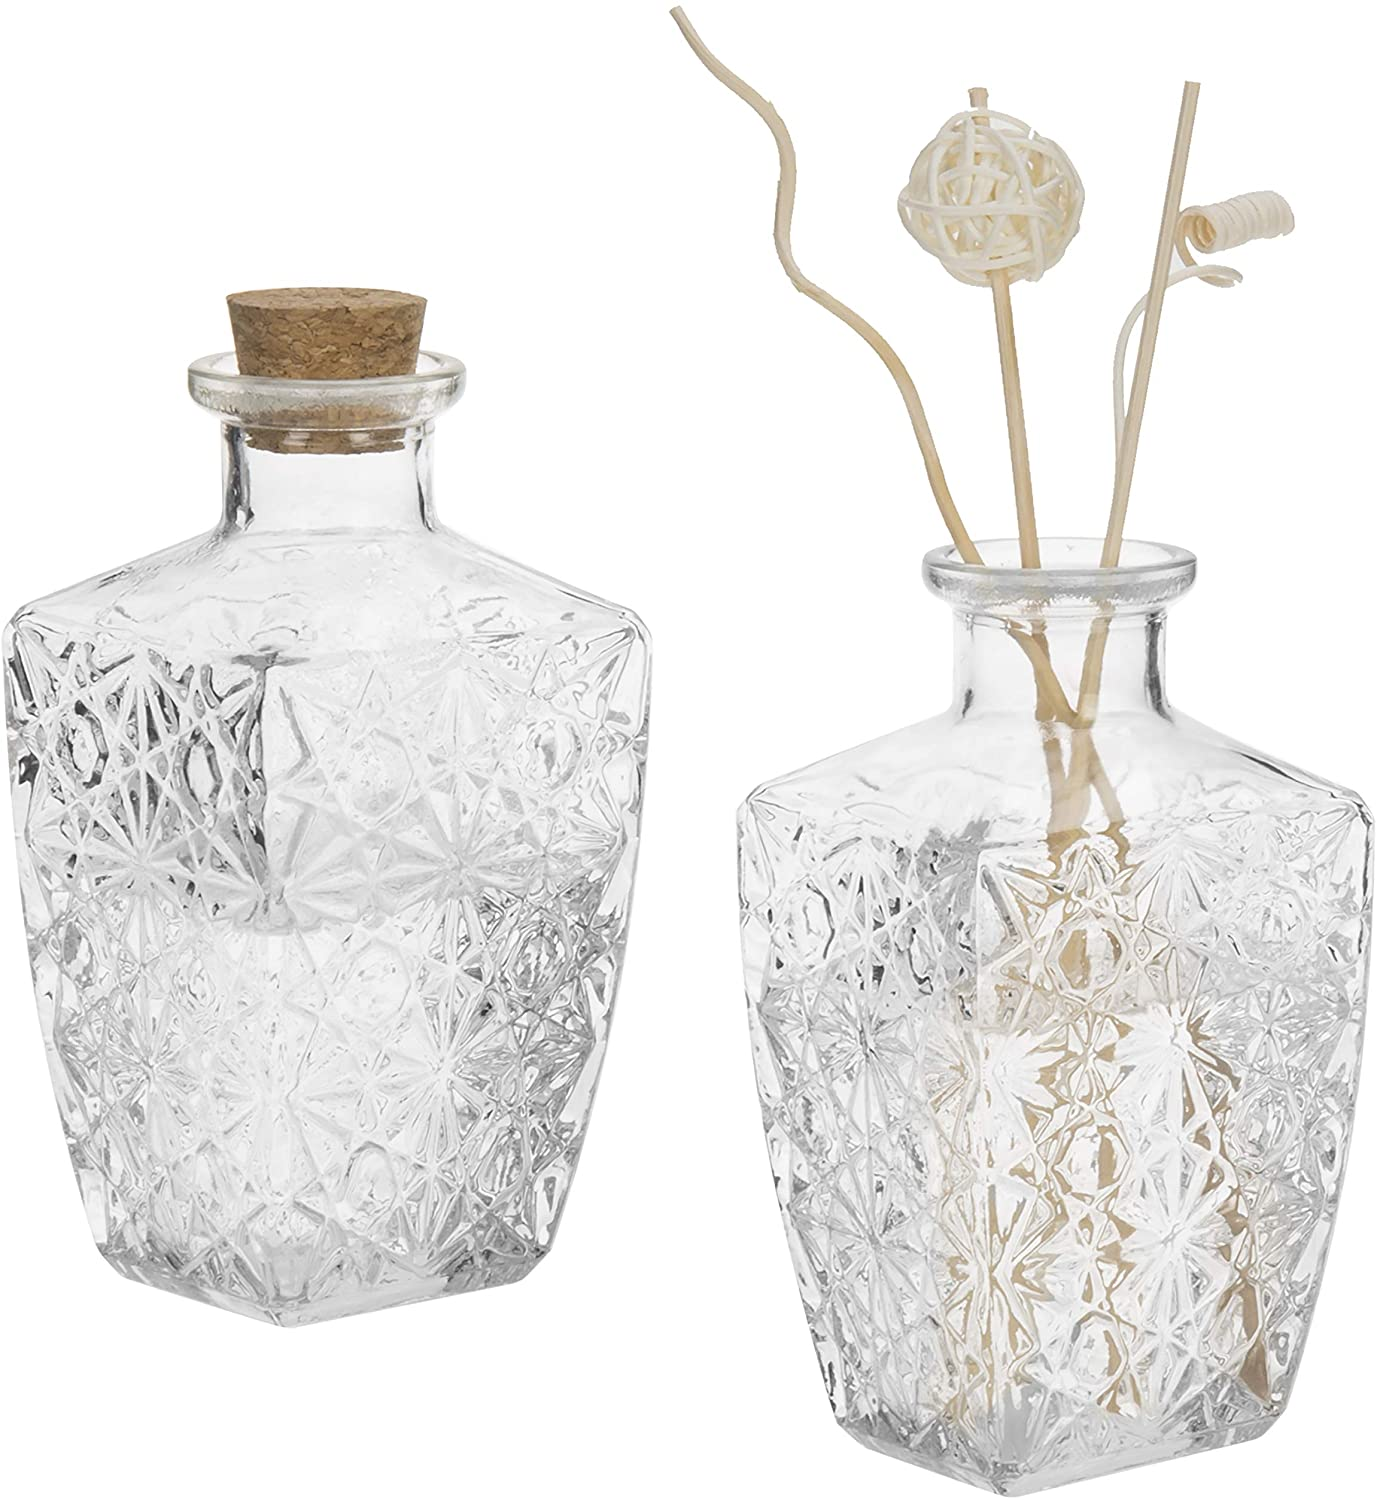 MyGift Diamond-Faceted Clear Glass Diffuser Bottles with Cork Lids, Set of 2